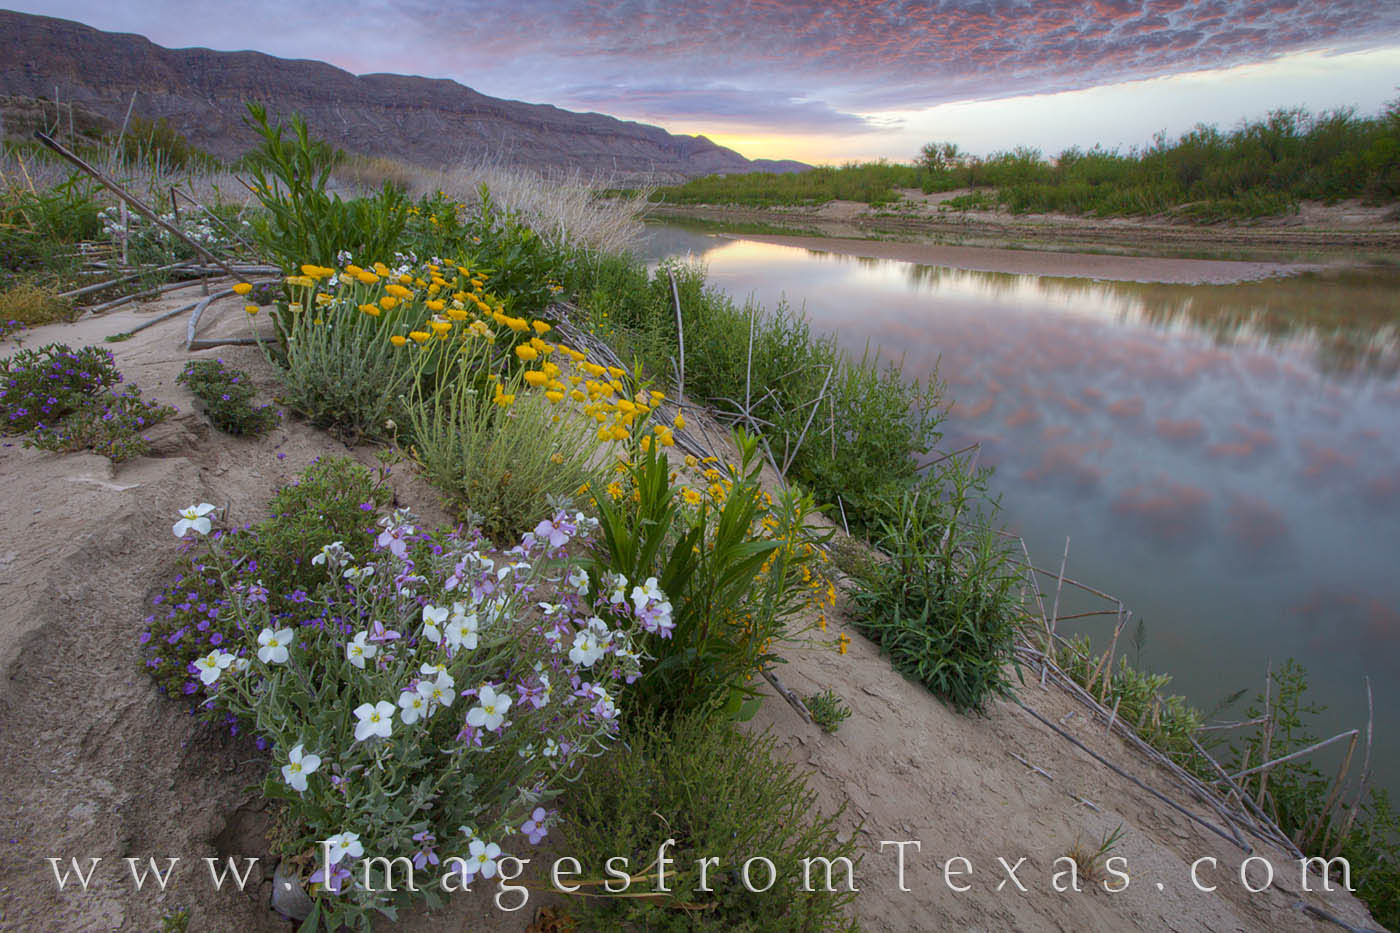 big bend national park images,big bend photos,rio grande,texas wildflowers,texas national parks,texas landscape,texas sunrise,texas prints,big bend wildflowers,big bend national park wildflowers, photo